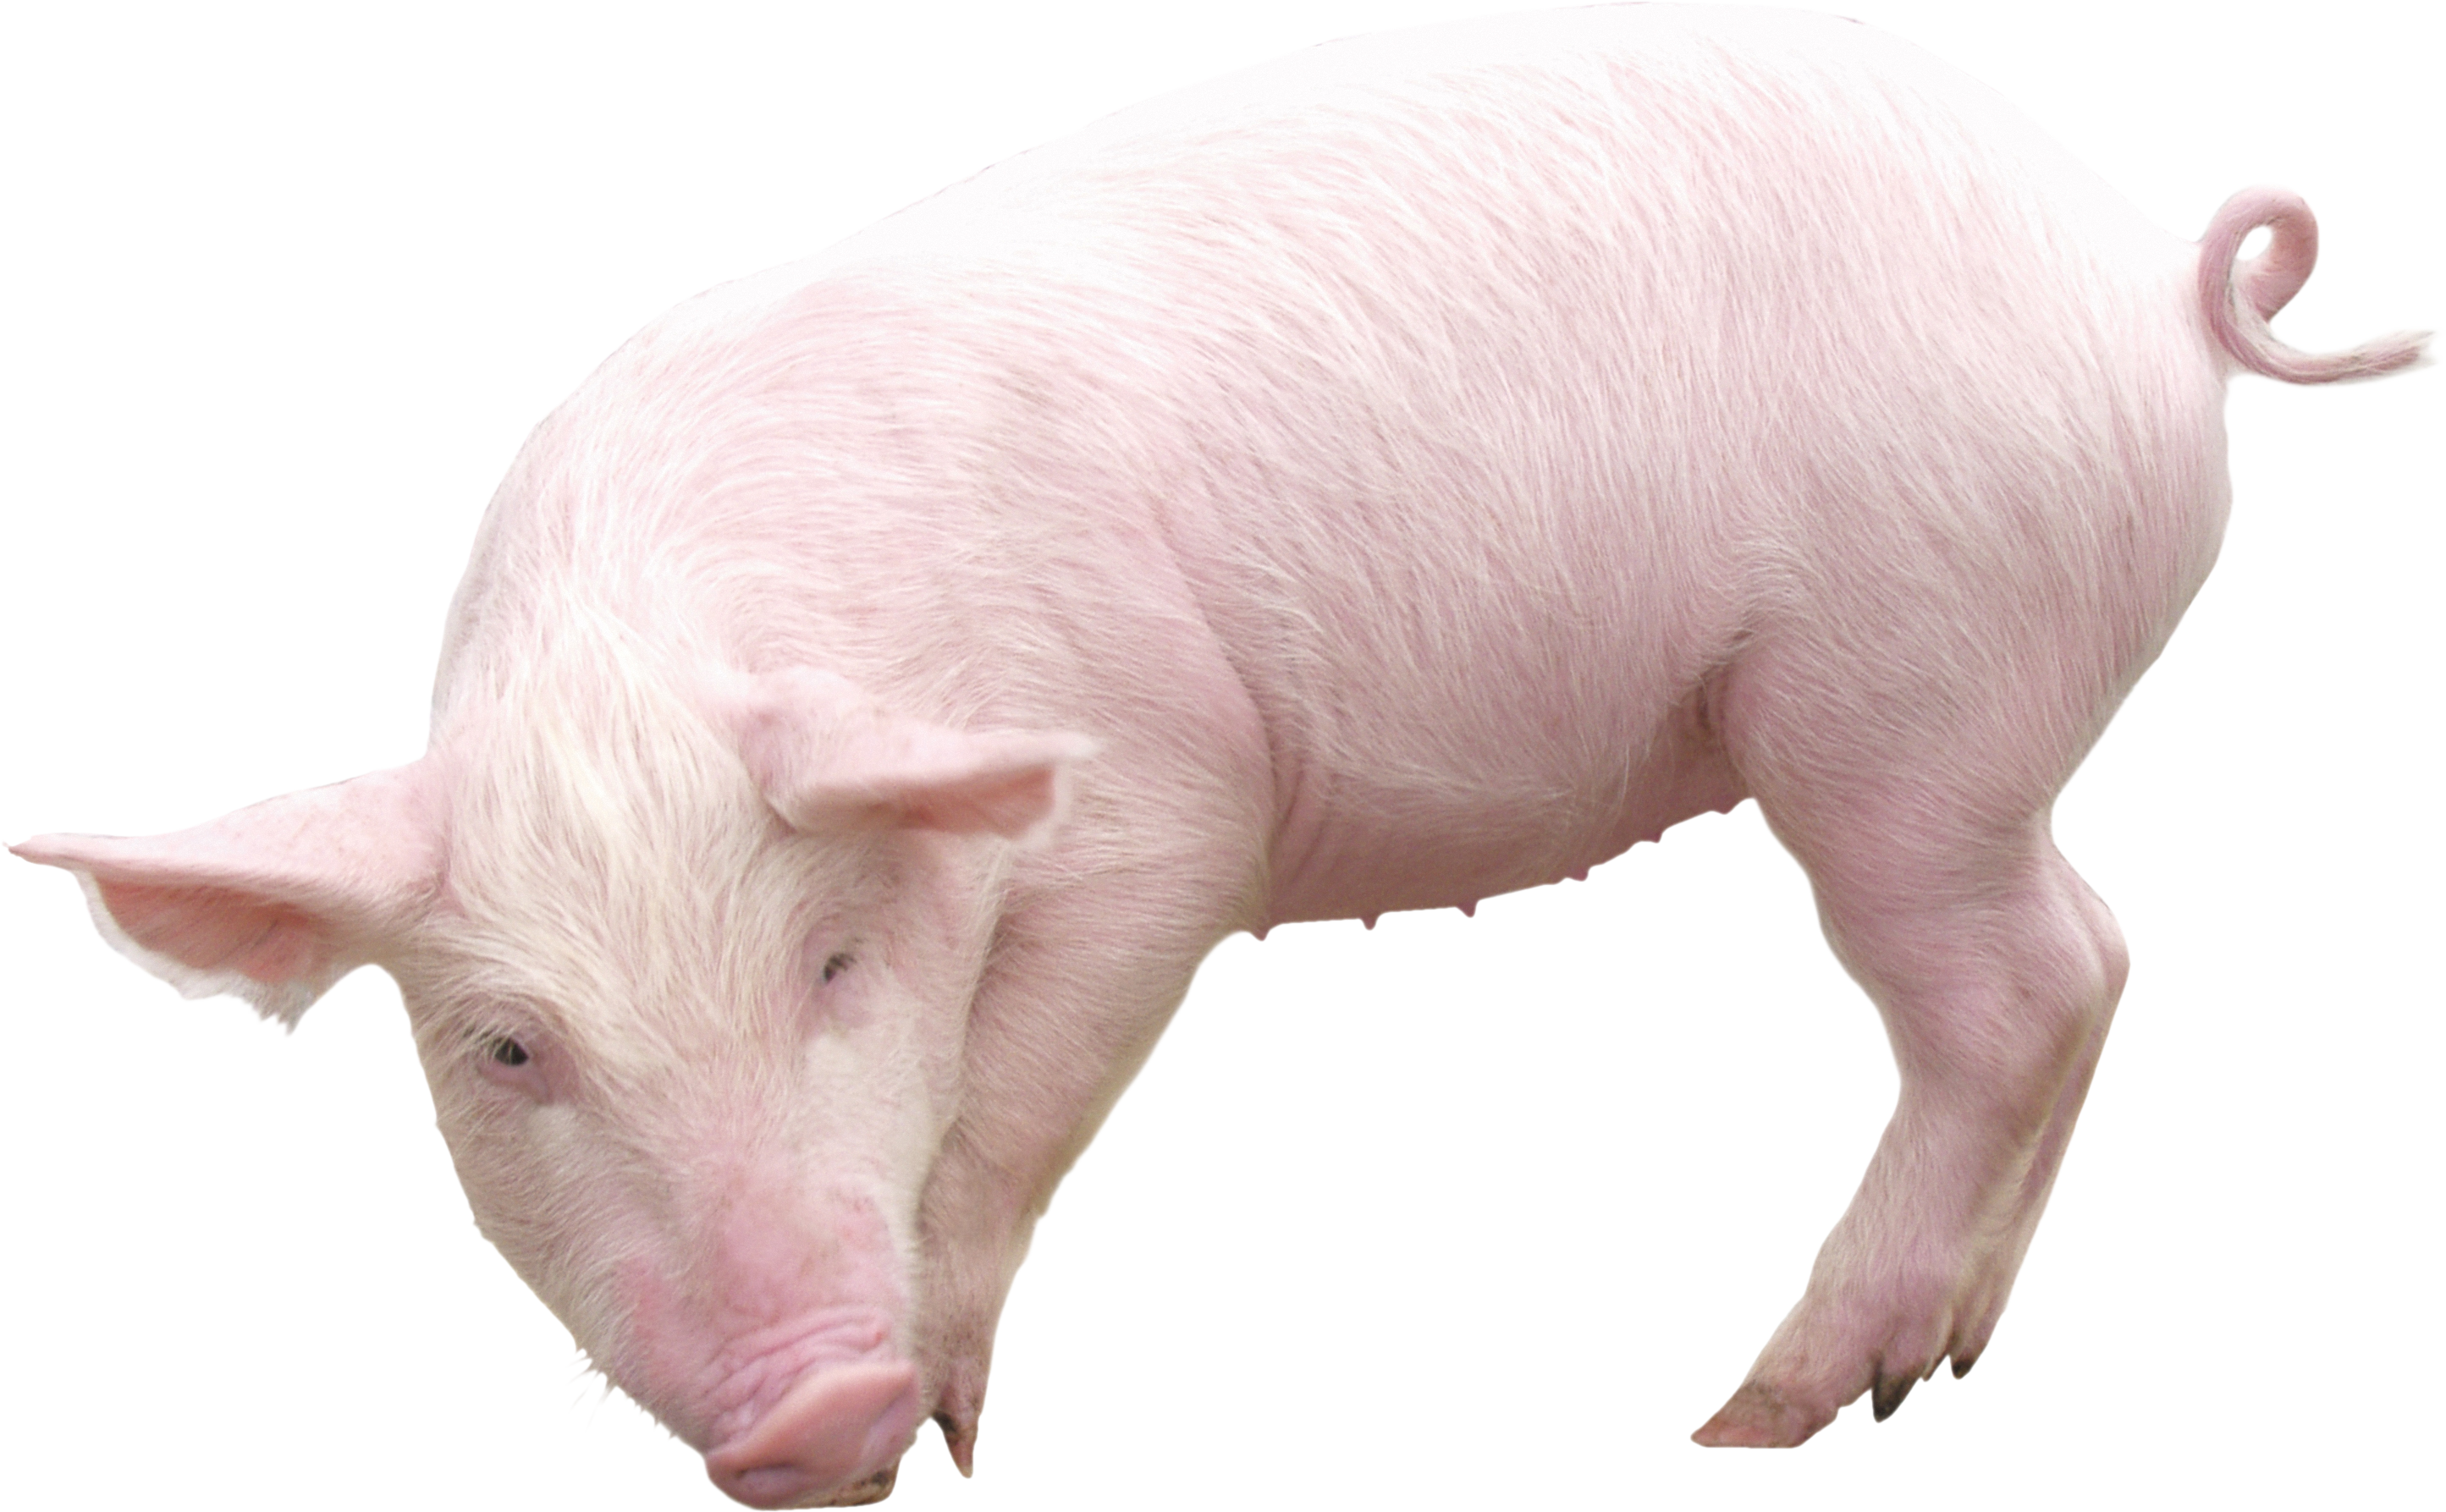 Pig From Sideview Png Image Pig Pig Art Pig Png